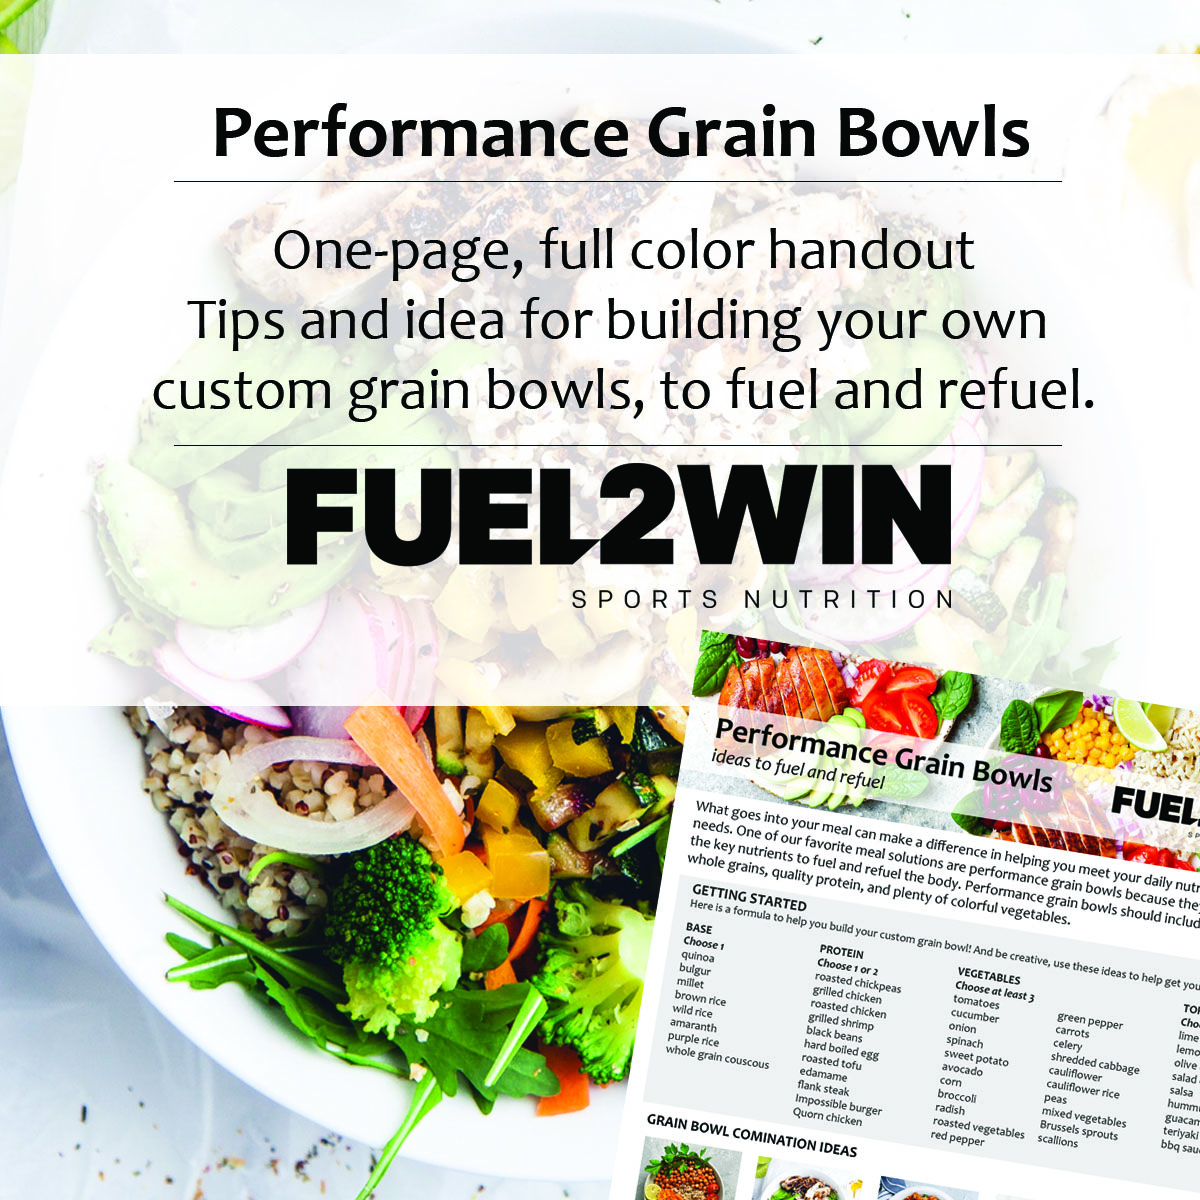 NEW! Performance Grain Bowl handout now available... check it out: http://fuel2win.com/blog/2020/5/29/performance-grain-bowls …  What are you fueling with?? #thefuel2win #dinner #performance pic.twitter.com/I75kP1C0r0